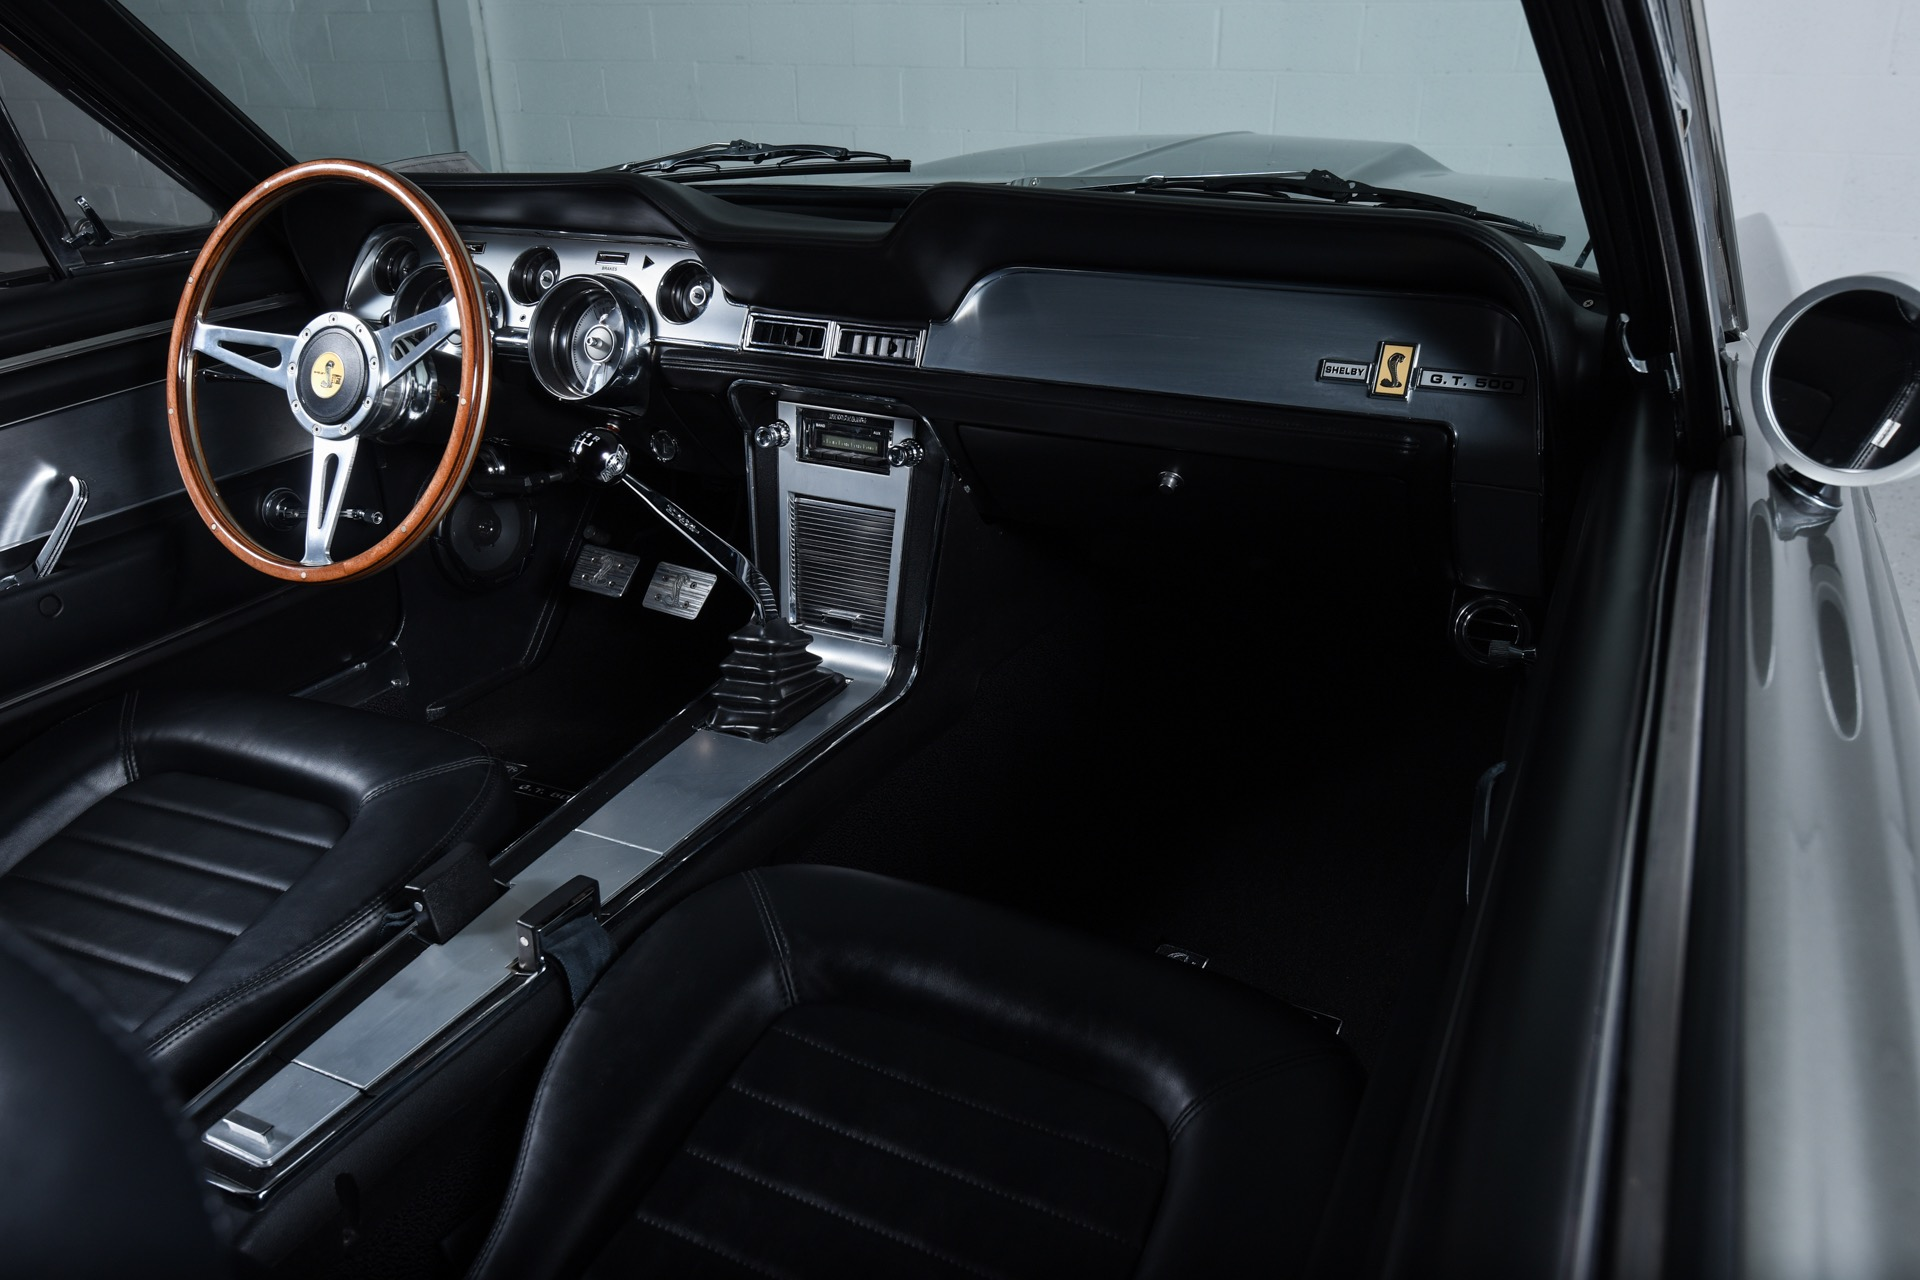 Ford Mustang 1967 Eleanor Interior